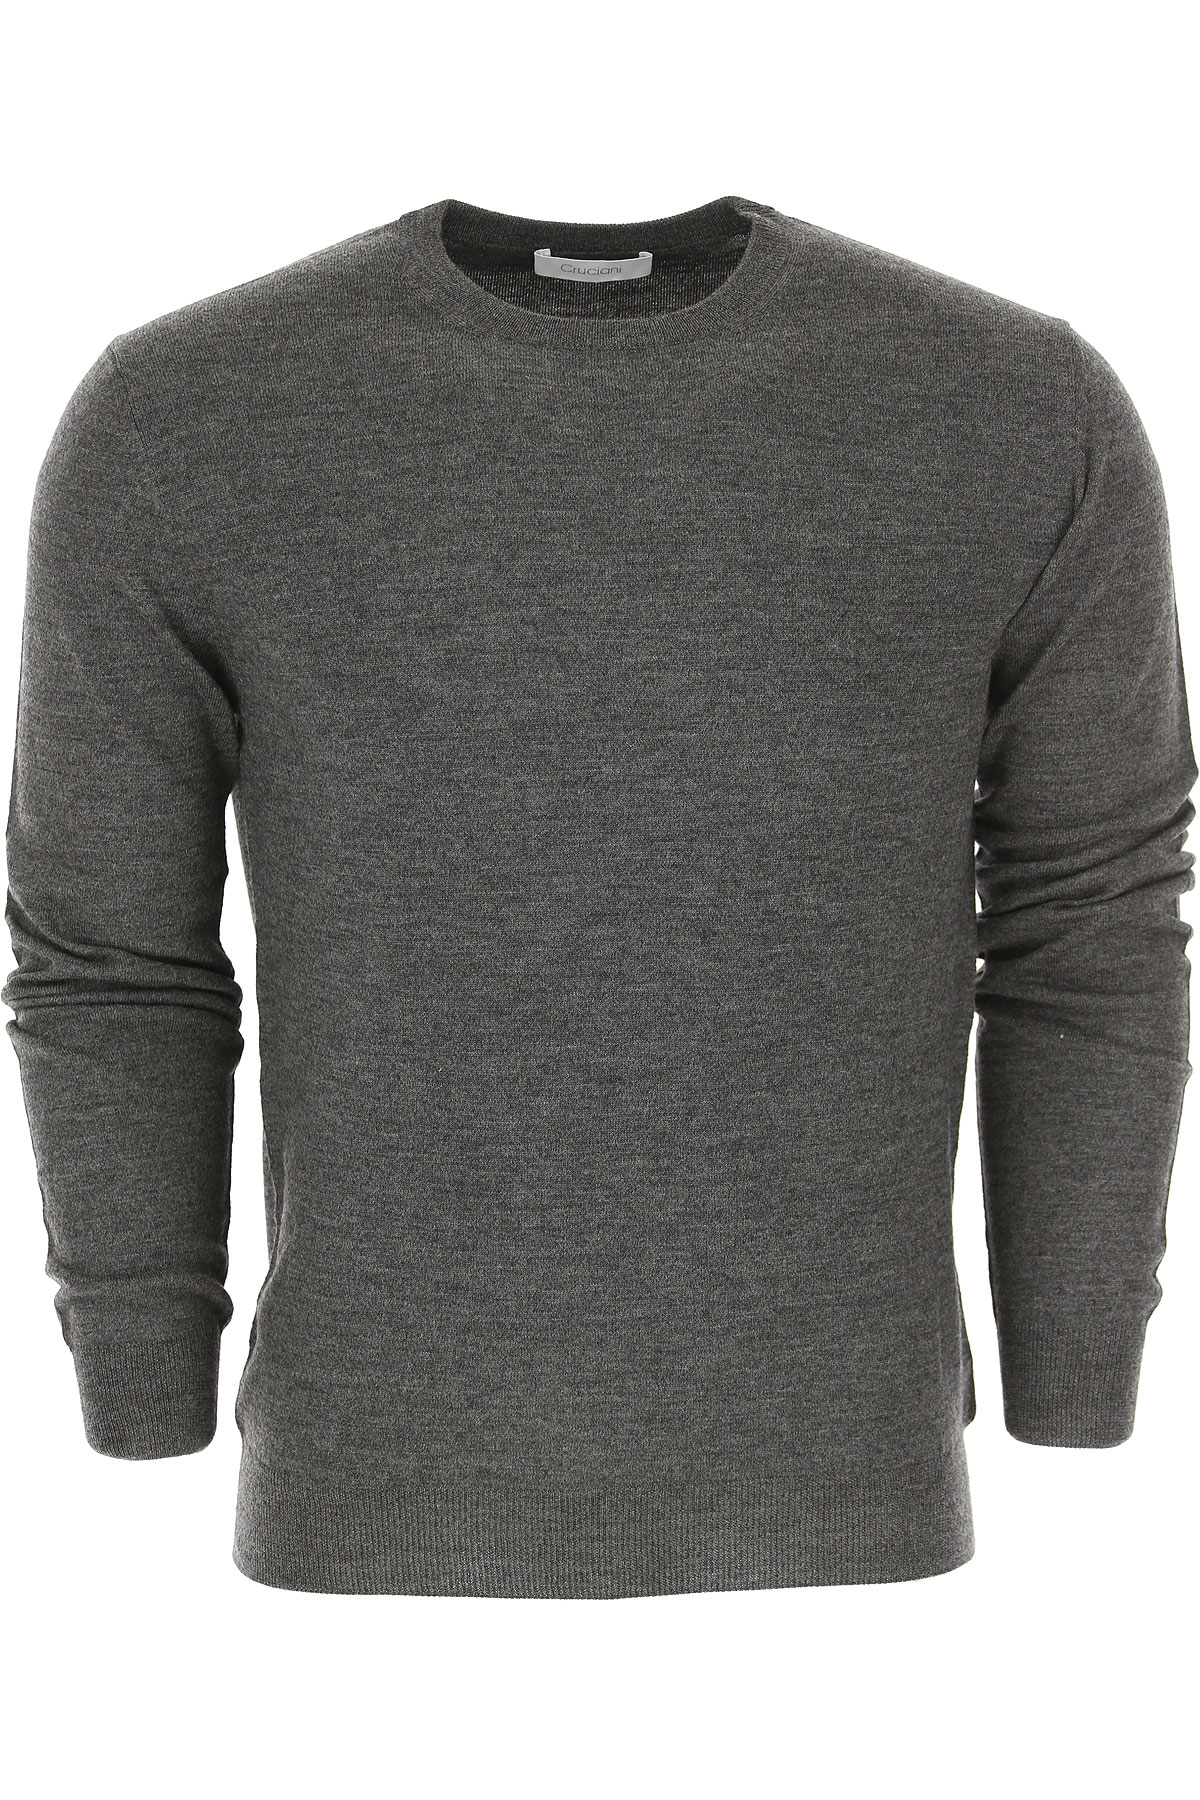 Image of Cruciani Sweater for Men Jumper, Anthracite, Wool, 2017, L M XL